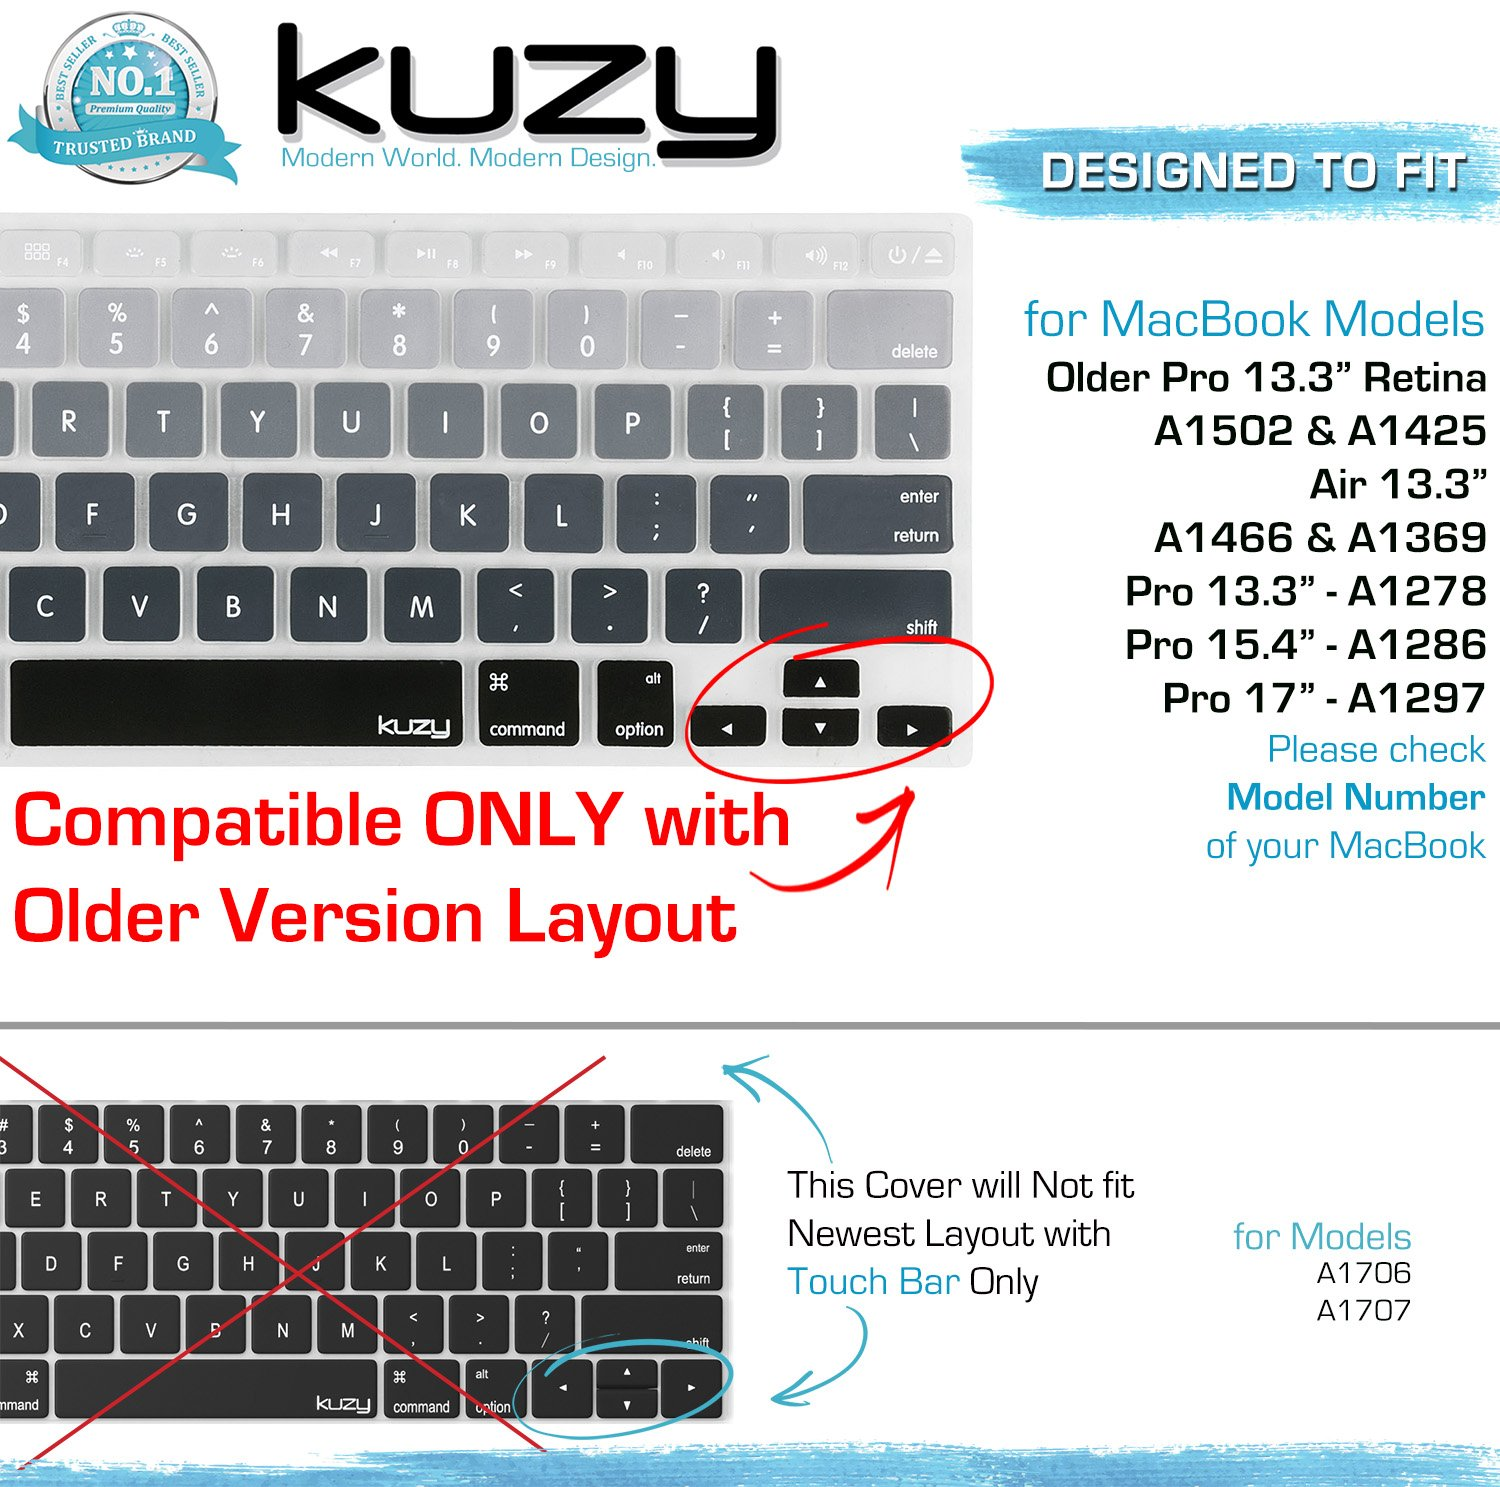 Kuzy Gray Ombre Colors Keyboard Cover Silicone Skin For Rearth Macbook Air 13 Keyskin Black Pro 15 17 With Or W Out Retina Display Imac And Mix